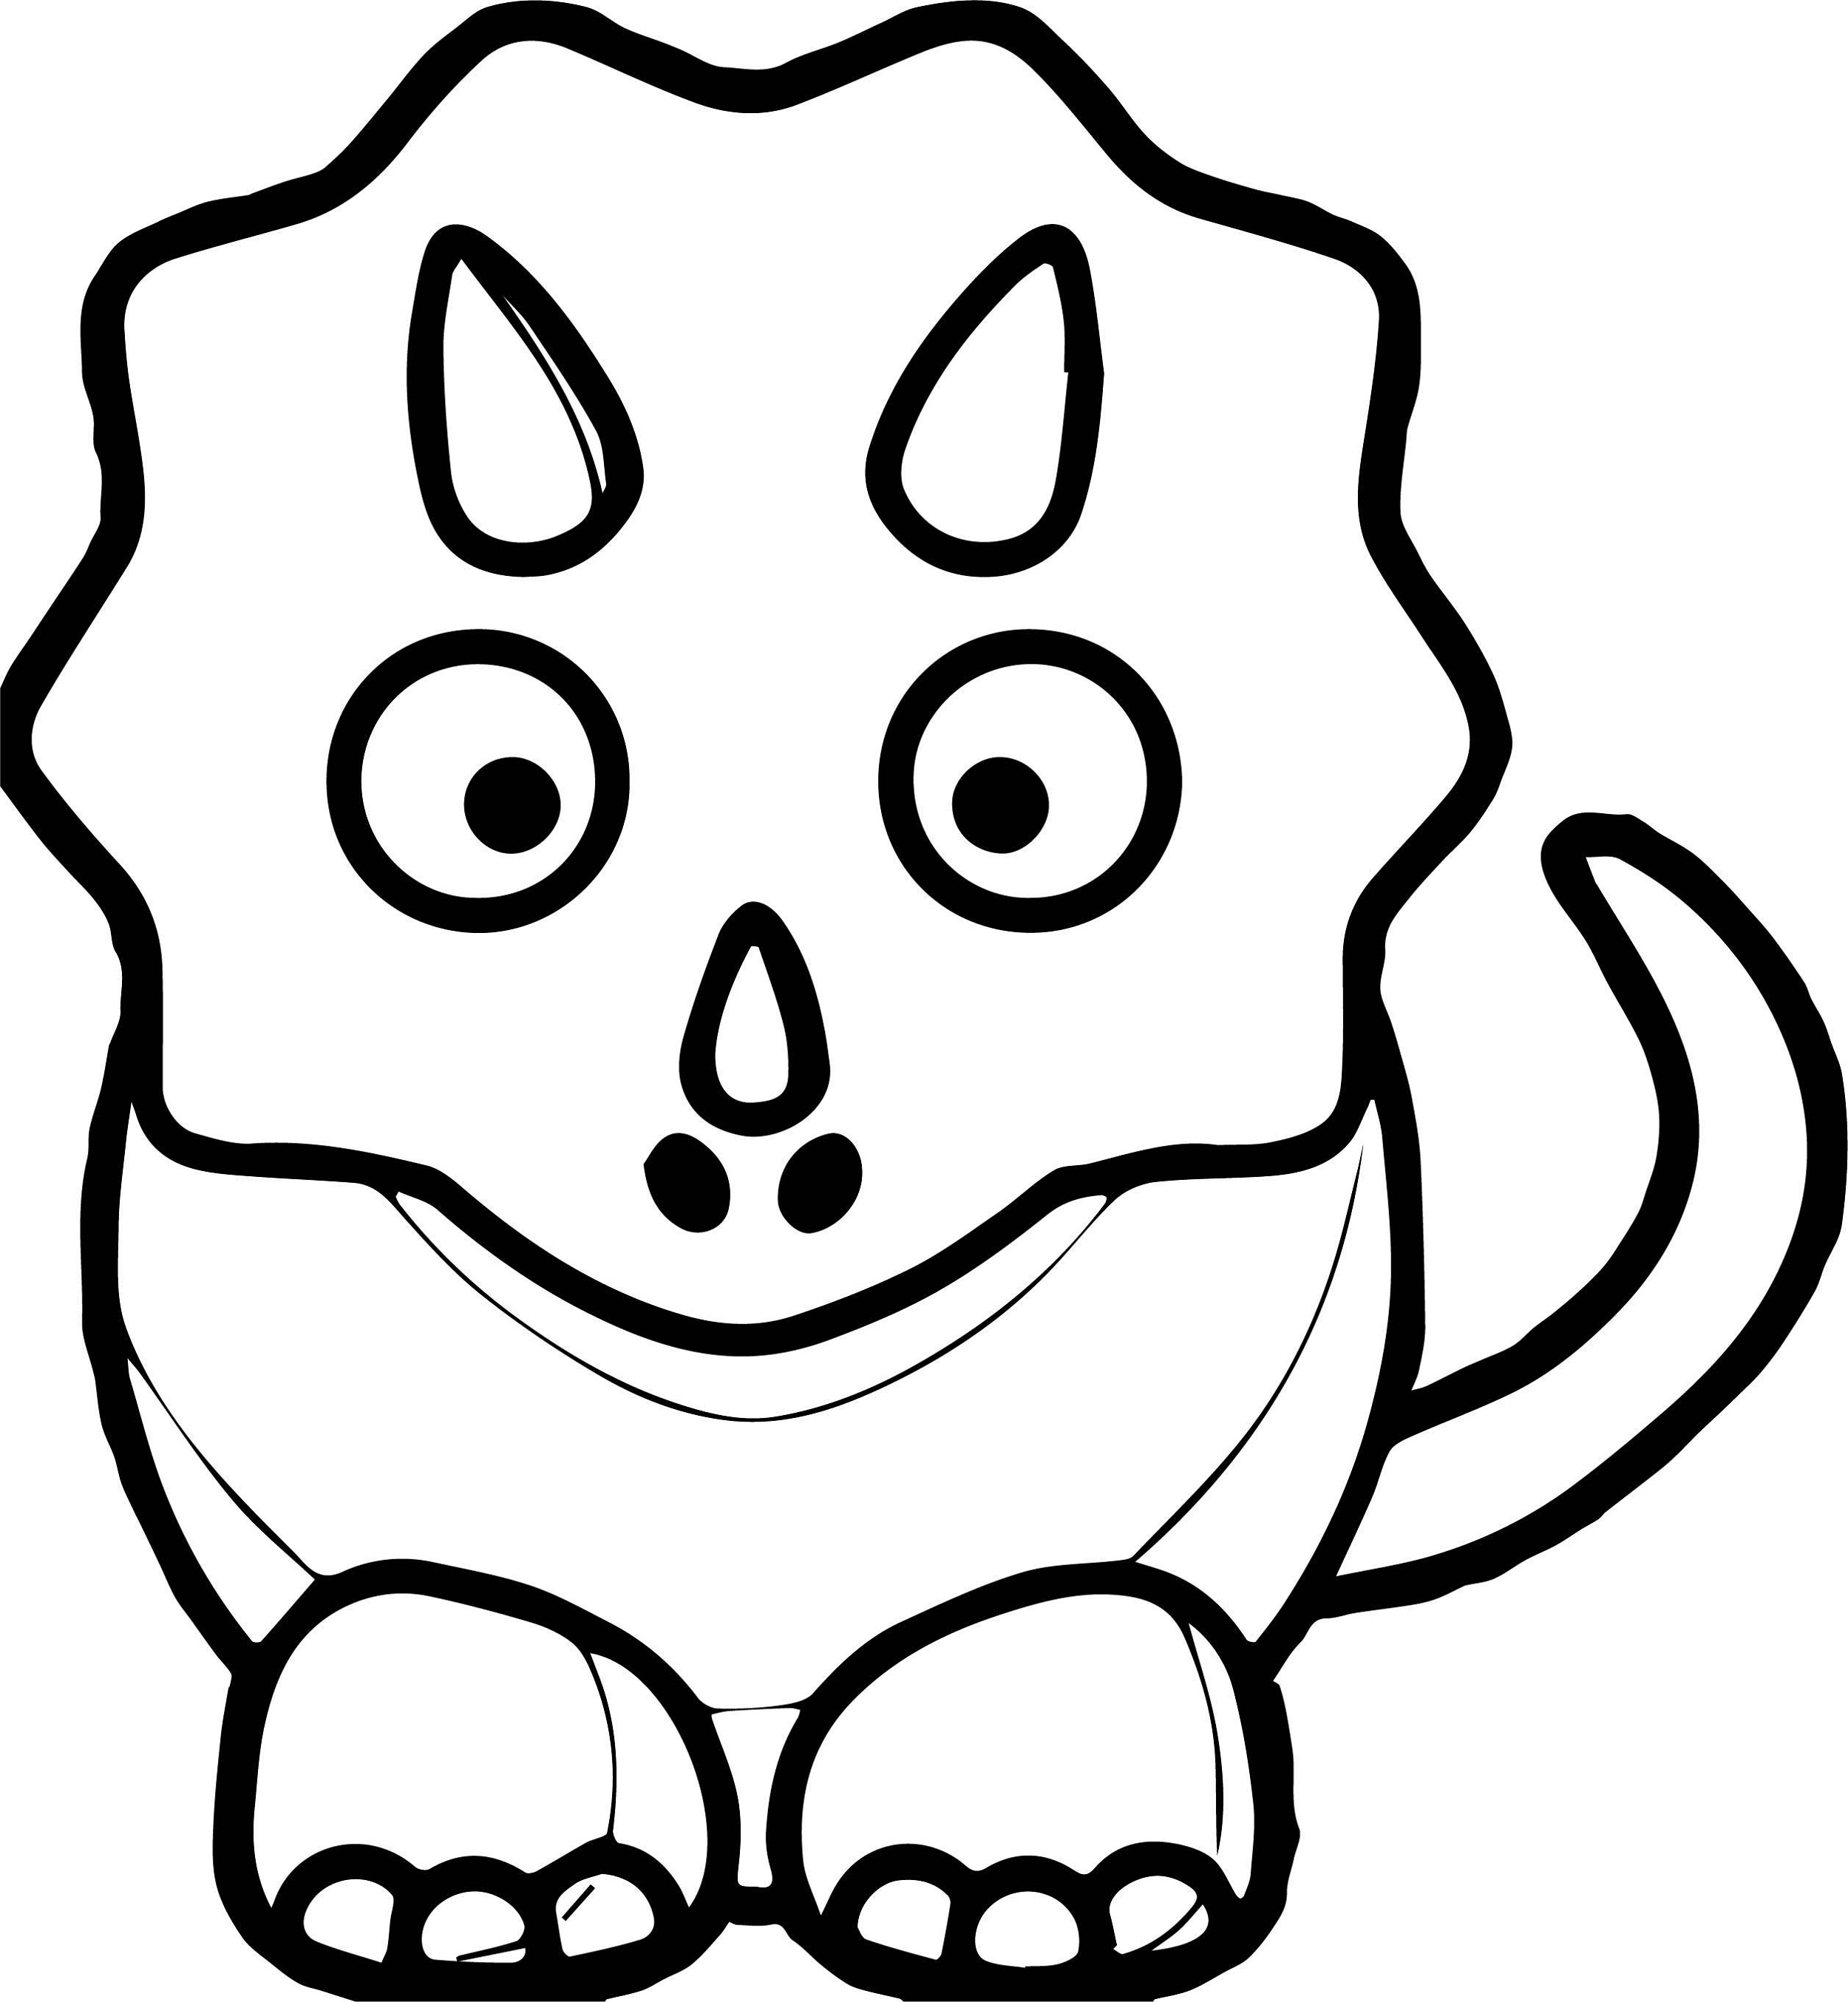 dinasour coloring pages dinosaurs to color for kids ba dinosaurs kids coloring dinasour pages coloring